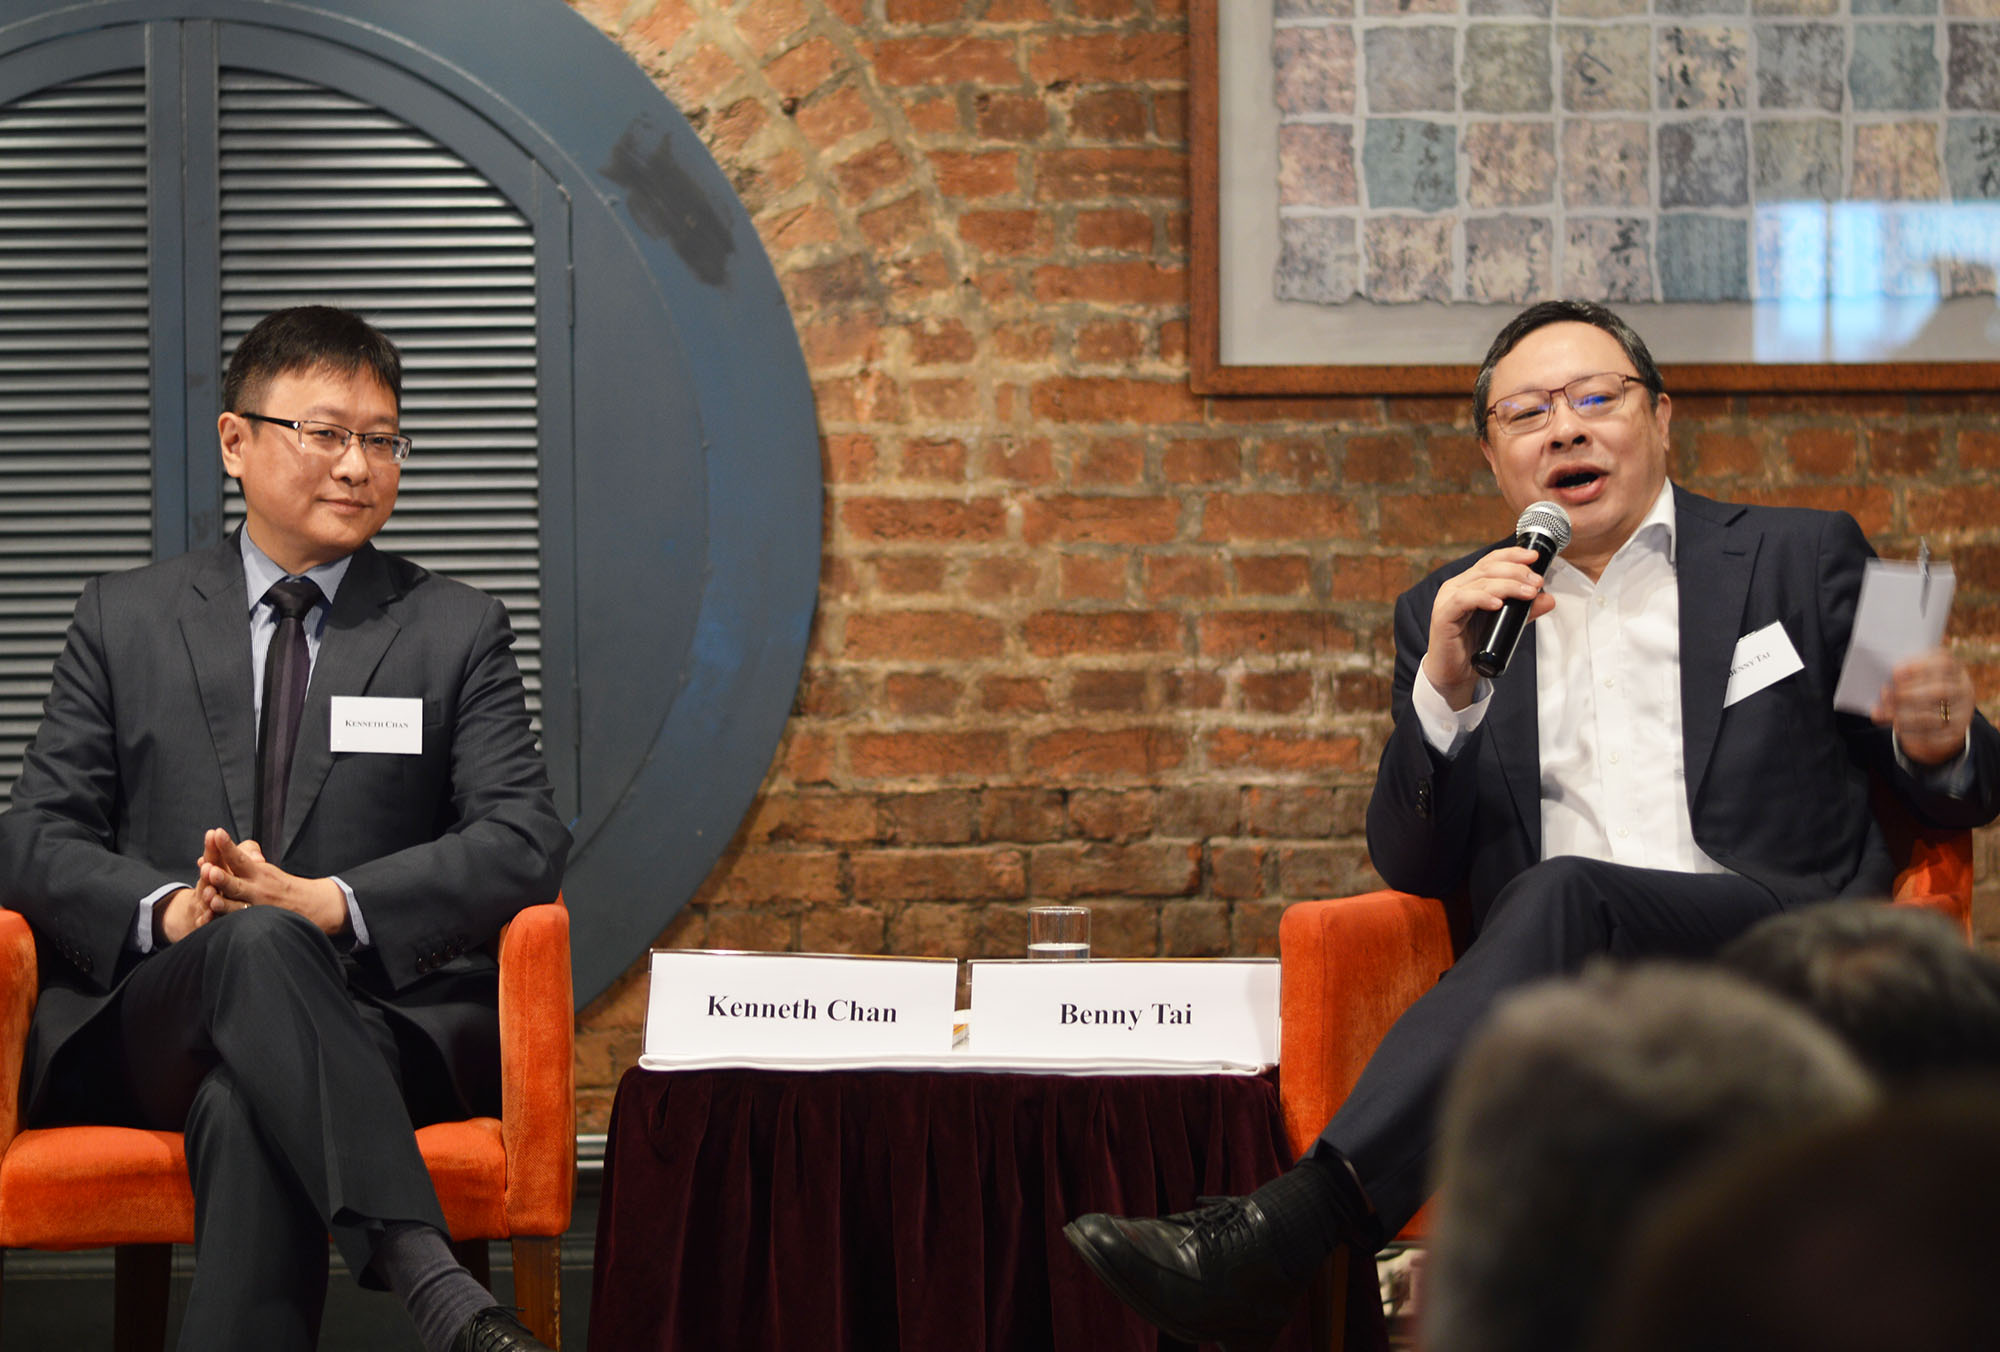 Kenneth Chan, left, and Benny Tai discuss the erosion of Hong Kong's freedoms. Photo: Sarah Graham/FCC